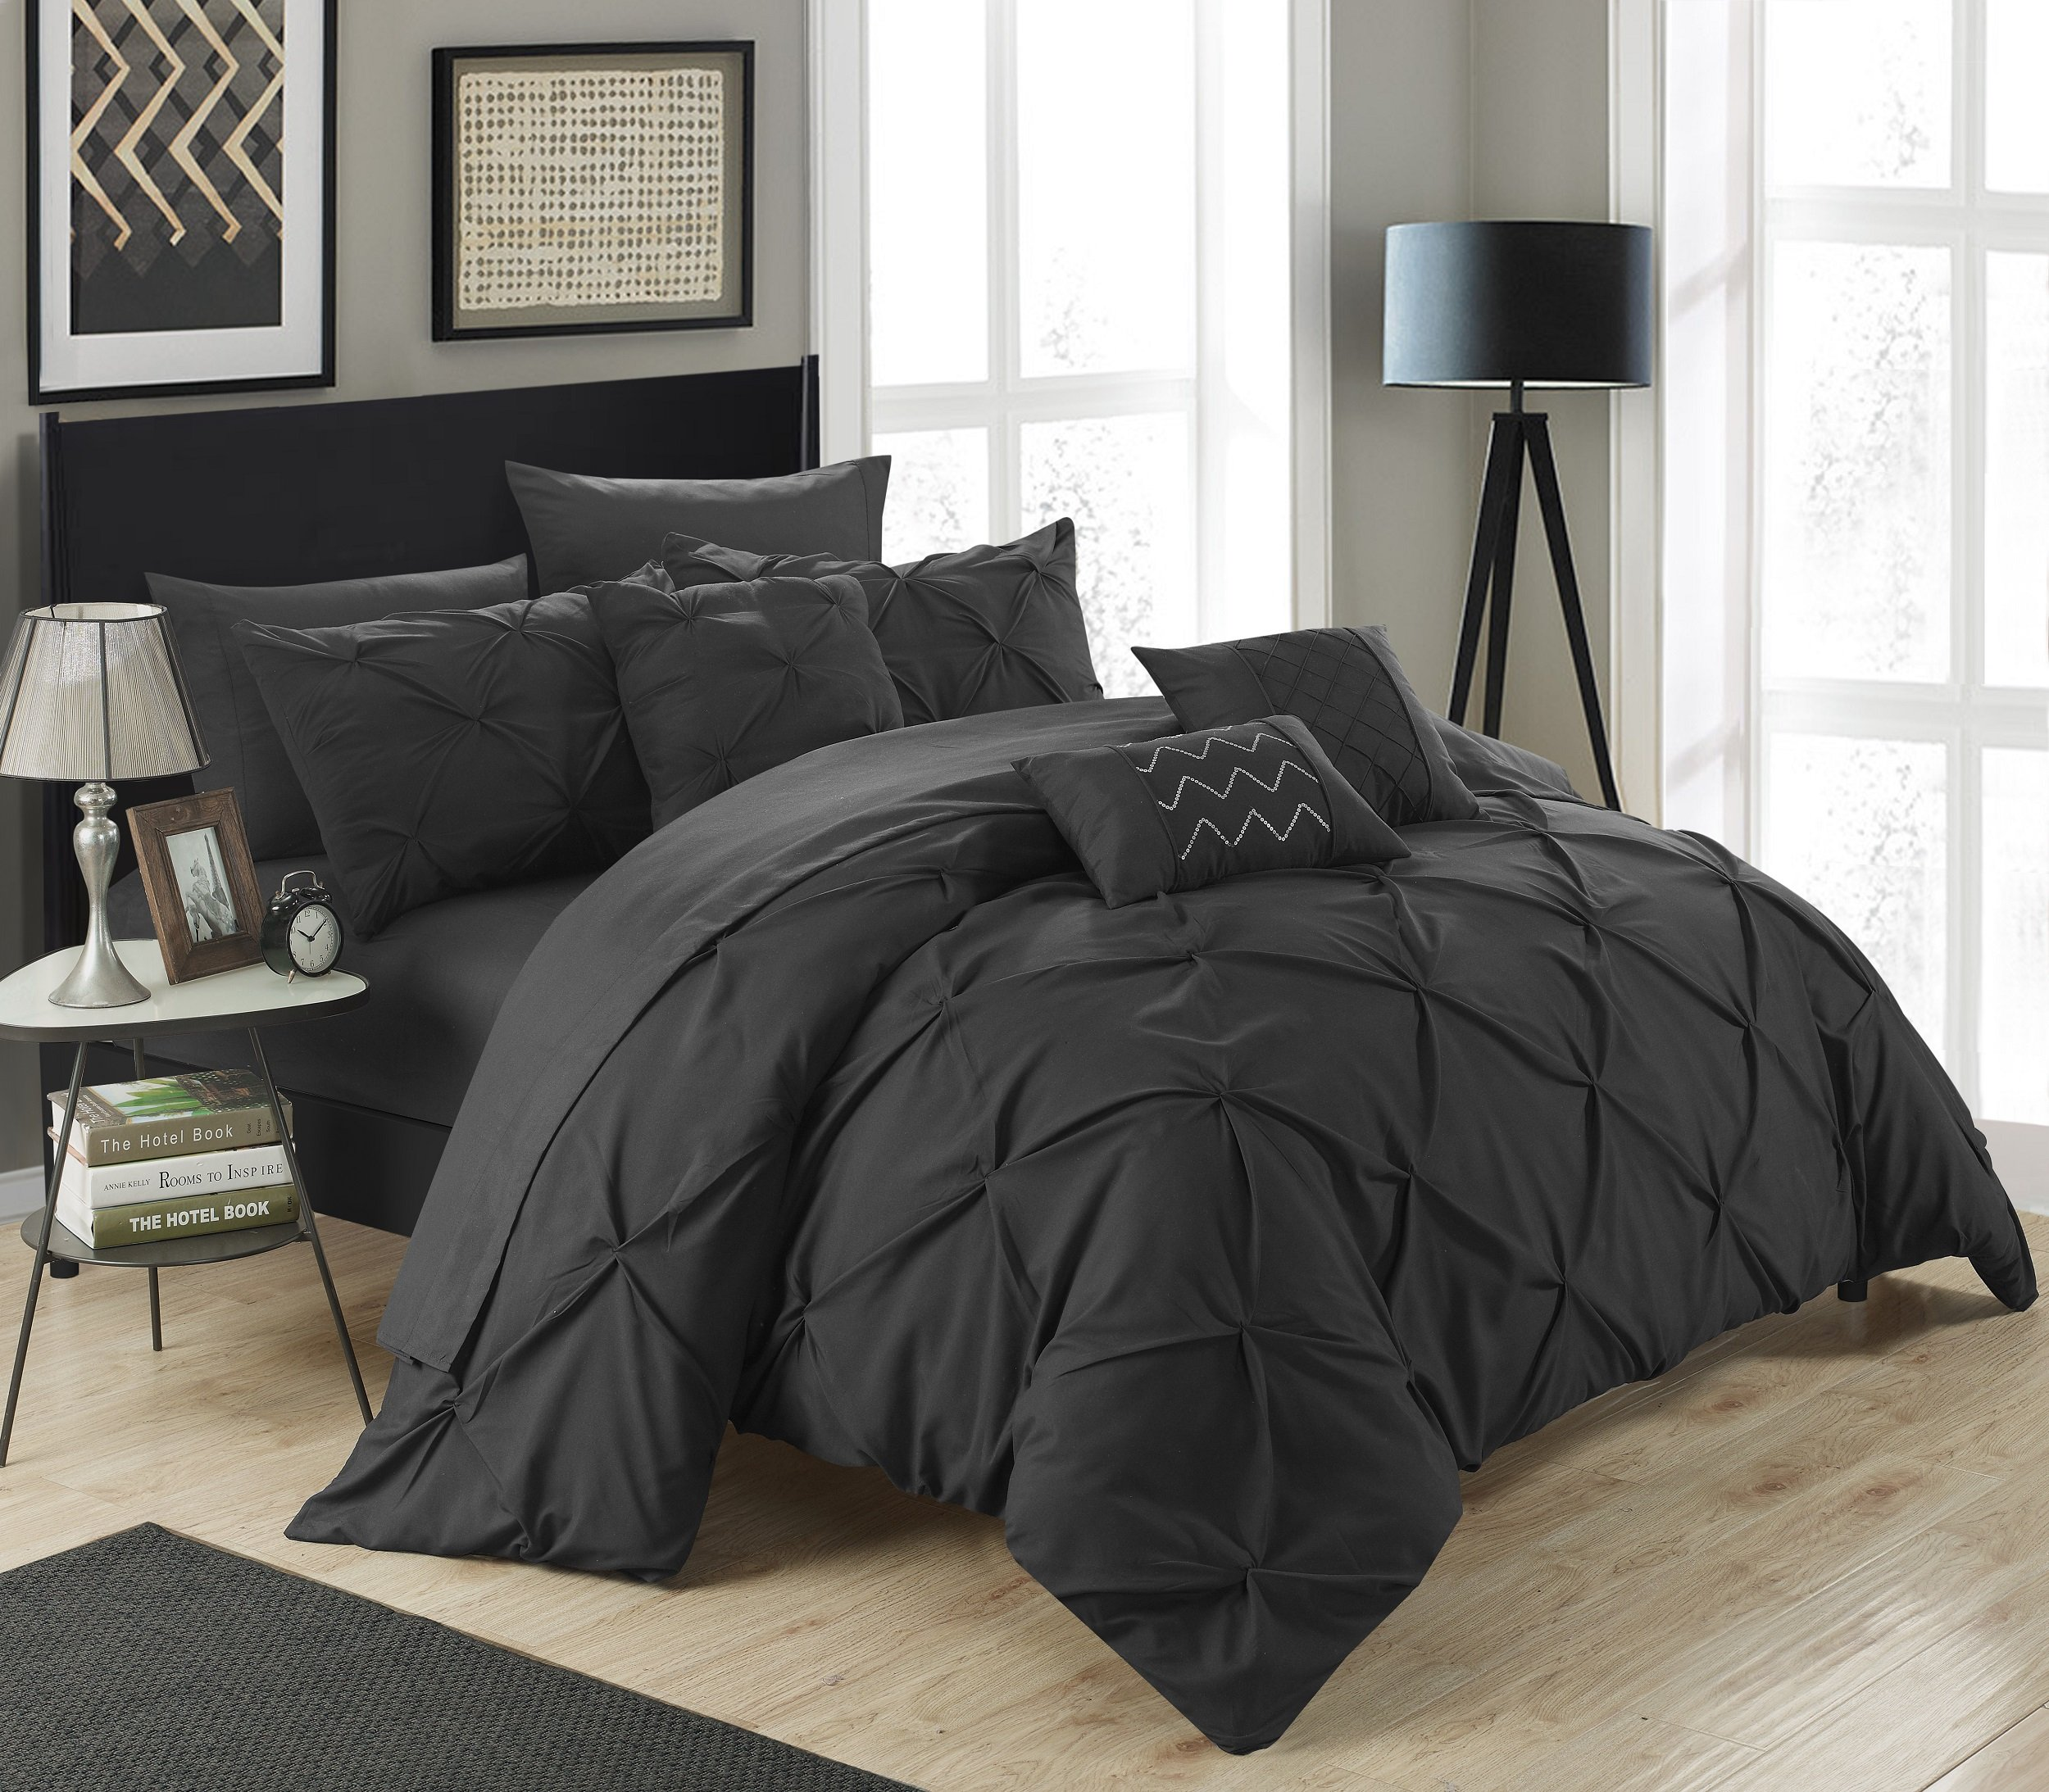 Chic Home 10 Piece Hannah Pinch Pleated, ruffled and pleated complete King Bed In a Bag Comforter Set Black With sheet set by Chic Home